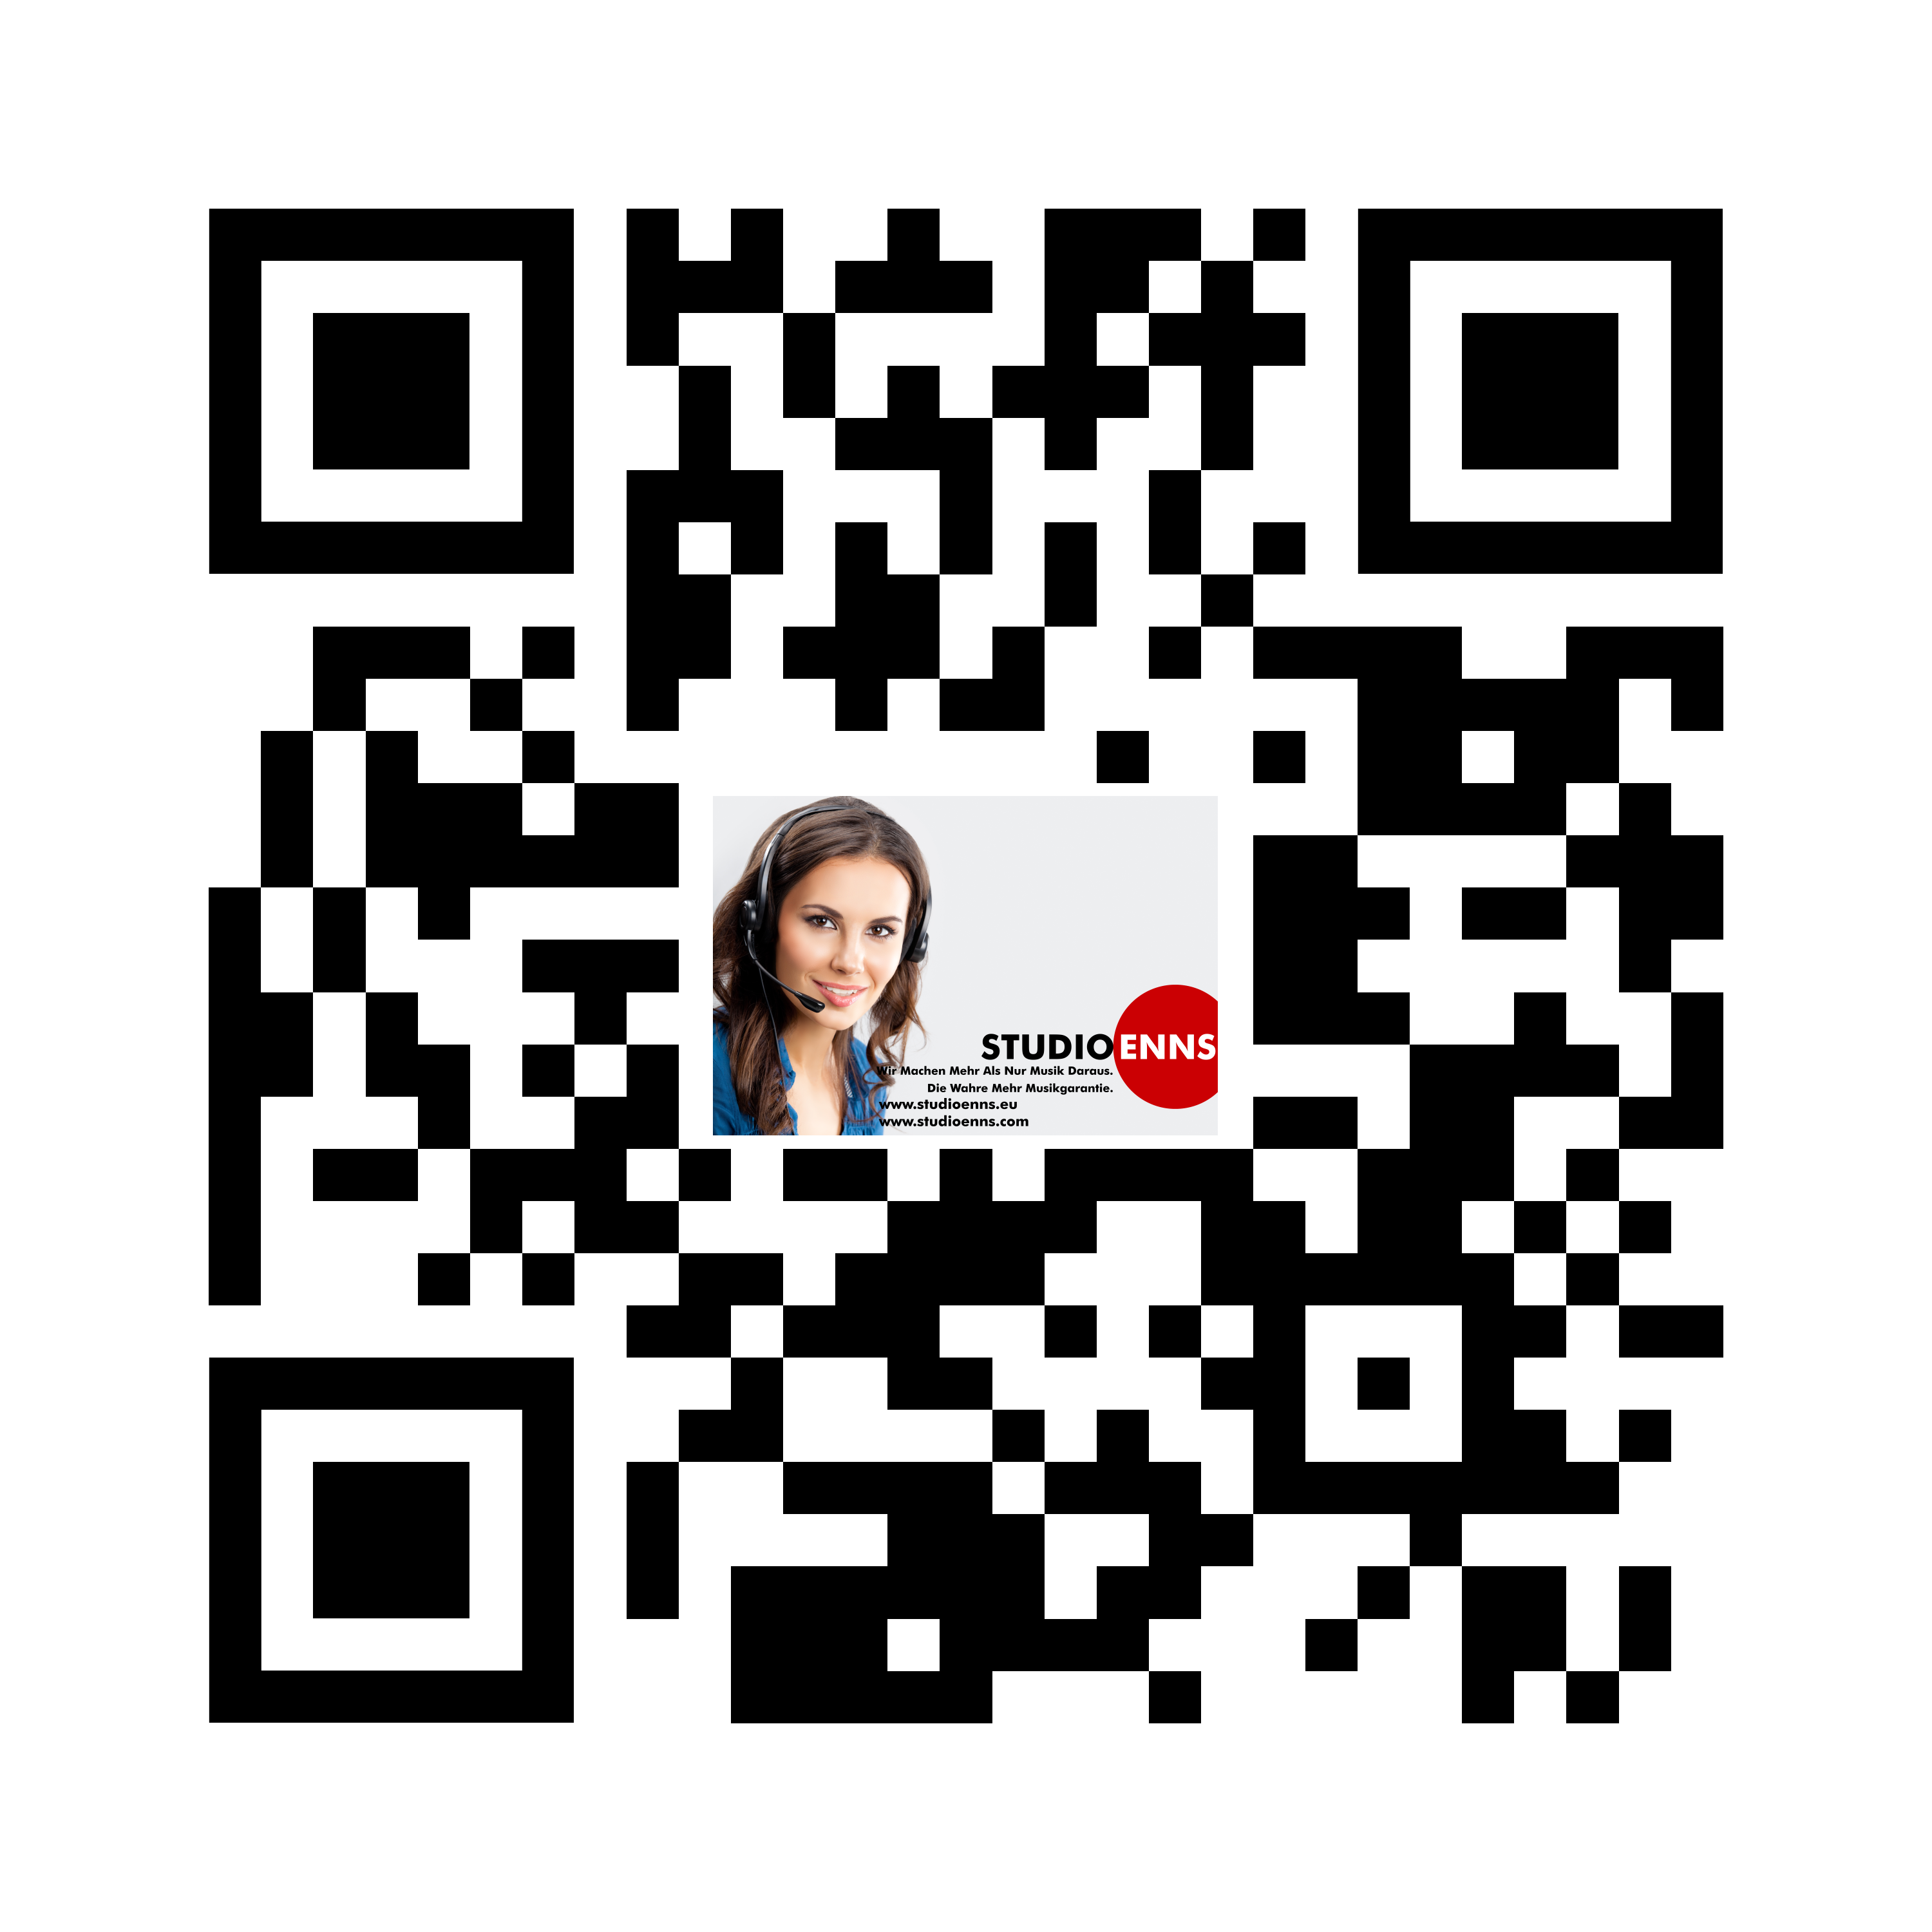 QR Code for for our homepage www.studioenns.eu